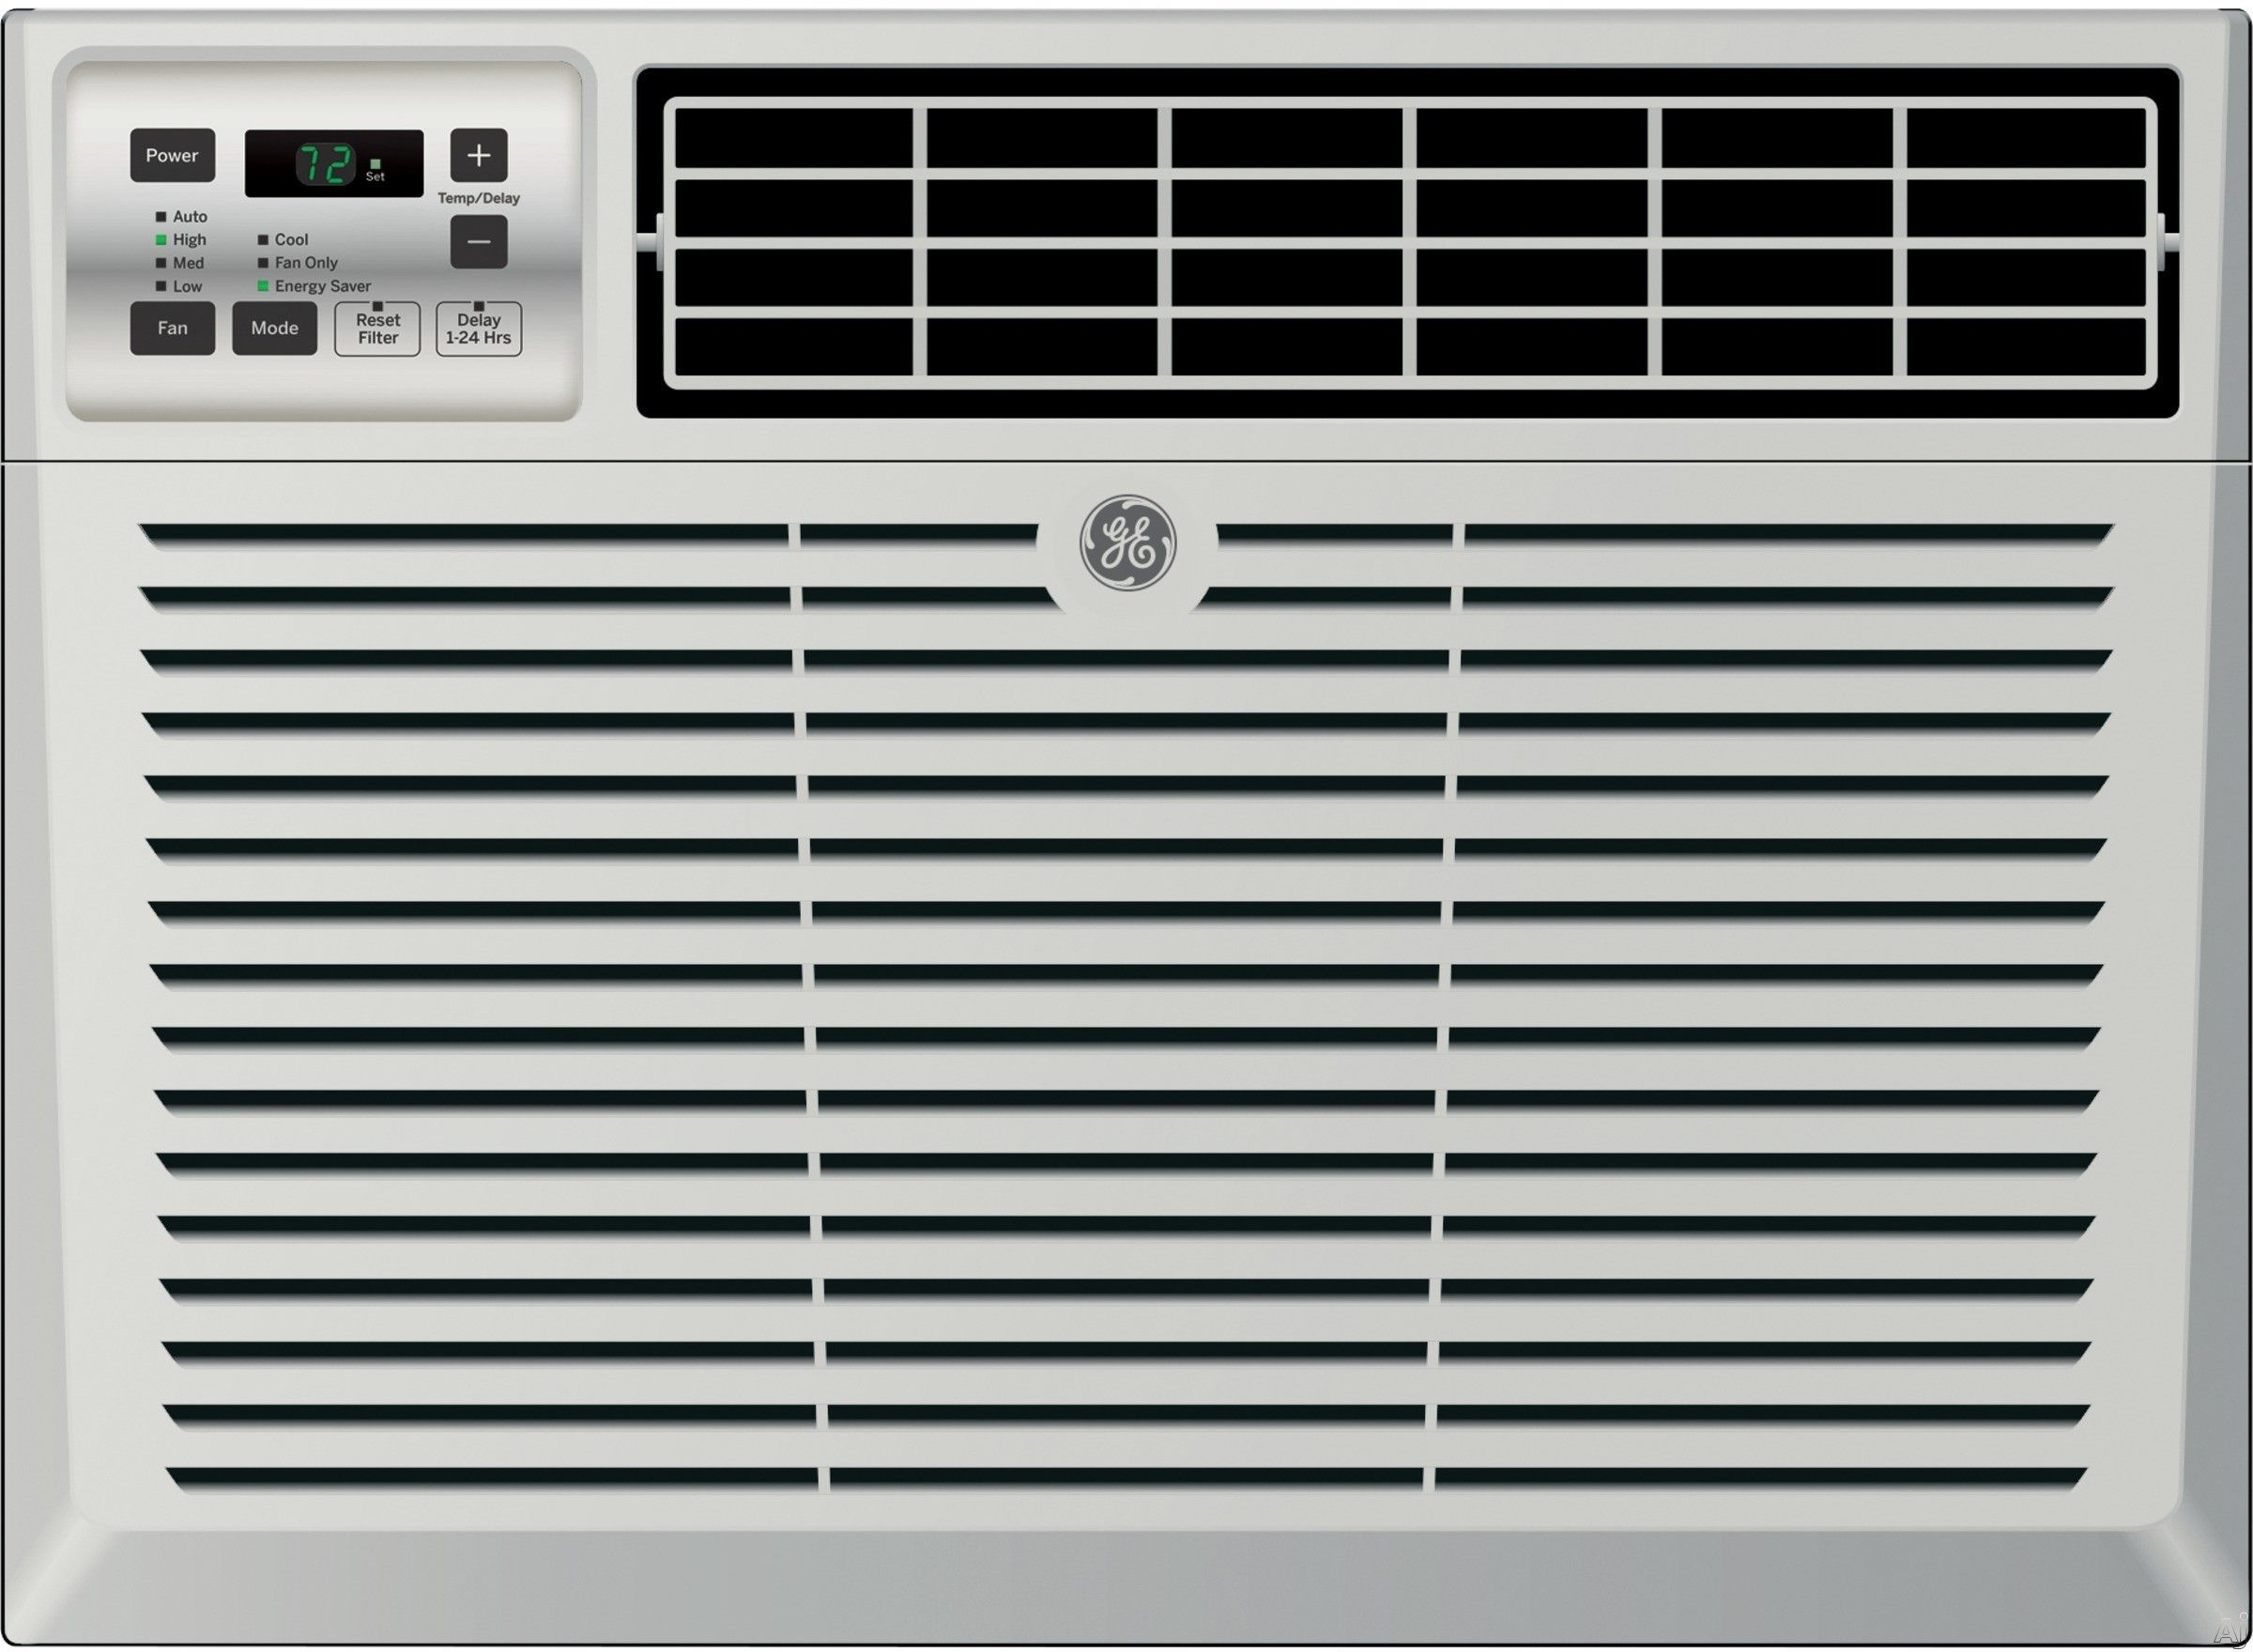 Ge Aec12av 12 050 Btu Room Air Conditioner With 290 Cfm 12 1 Eer Wifi Connect 3 4 Pts Hr Dehumidification 3 Fan Speeds Wifi Connect Electronic Digital The Window Air Conditioner Room Air Conditioner Room Air Conditioning